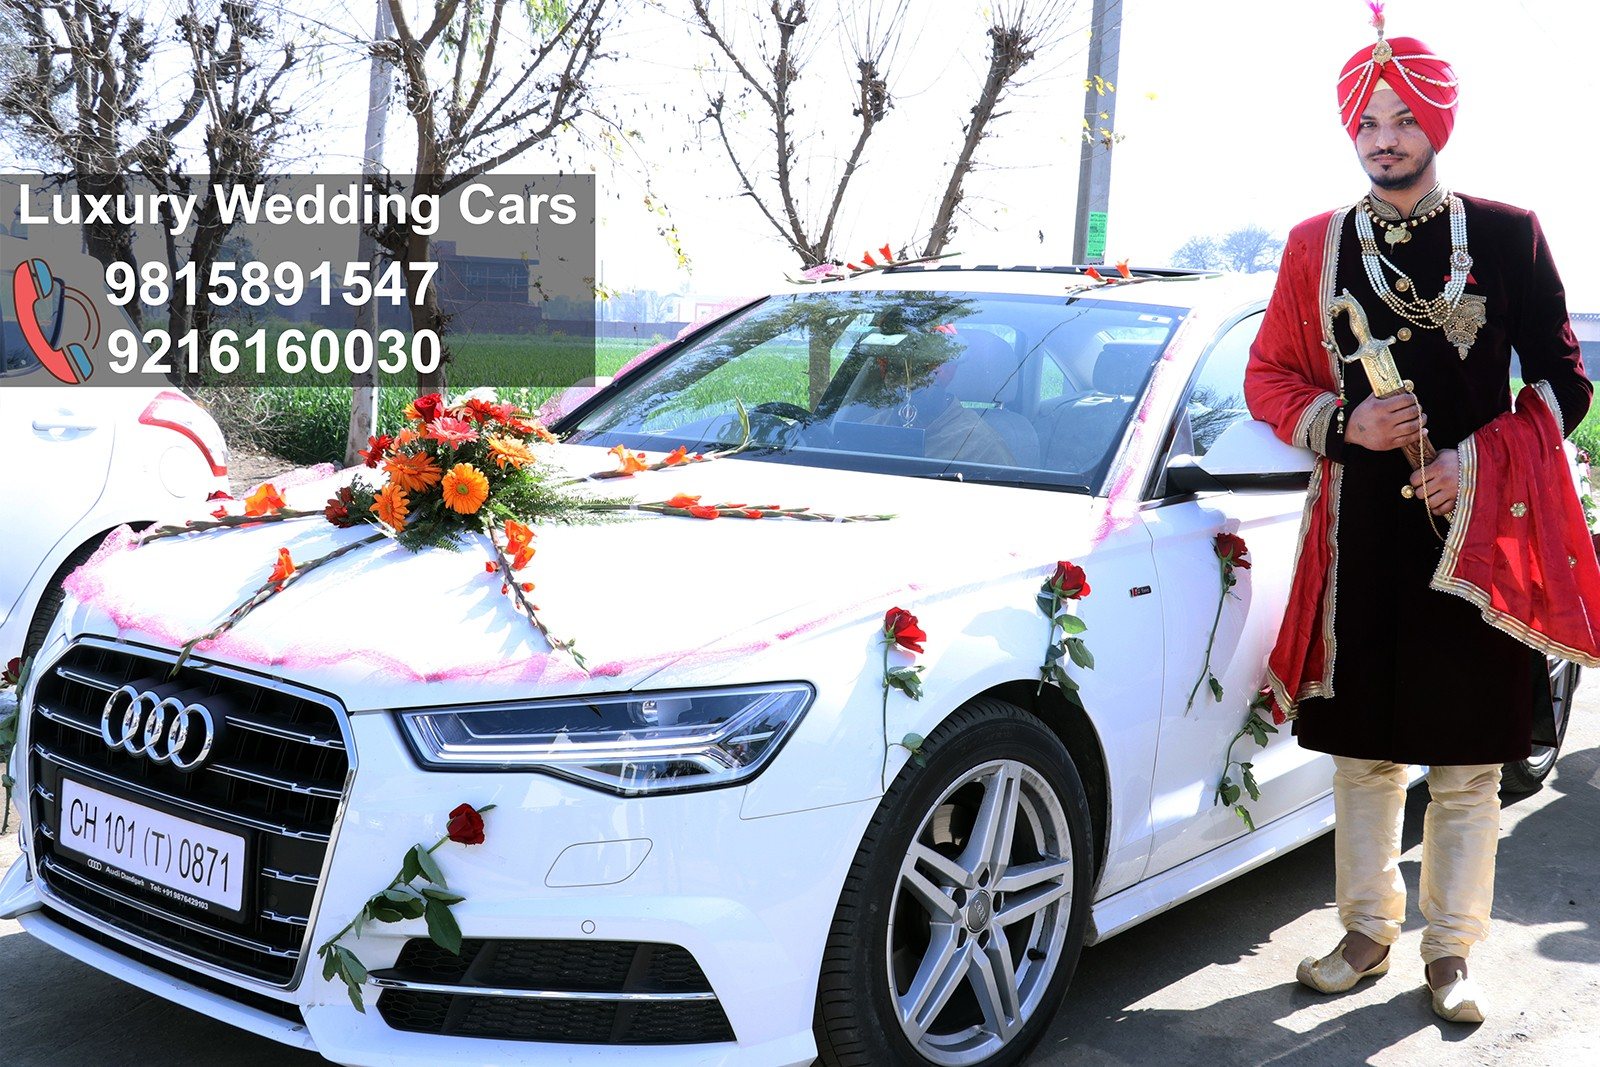 Wedding cars in Ambala, Hire wedding car in Ambala, Luxury wedding cars Ambala Wedding cars in Ambala, Hire wedding car in Ambala, Luxury wedding cars Ambala